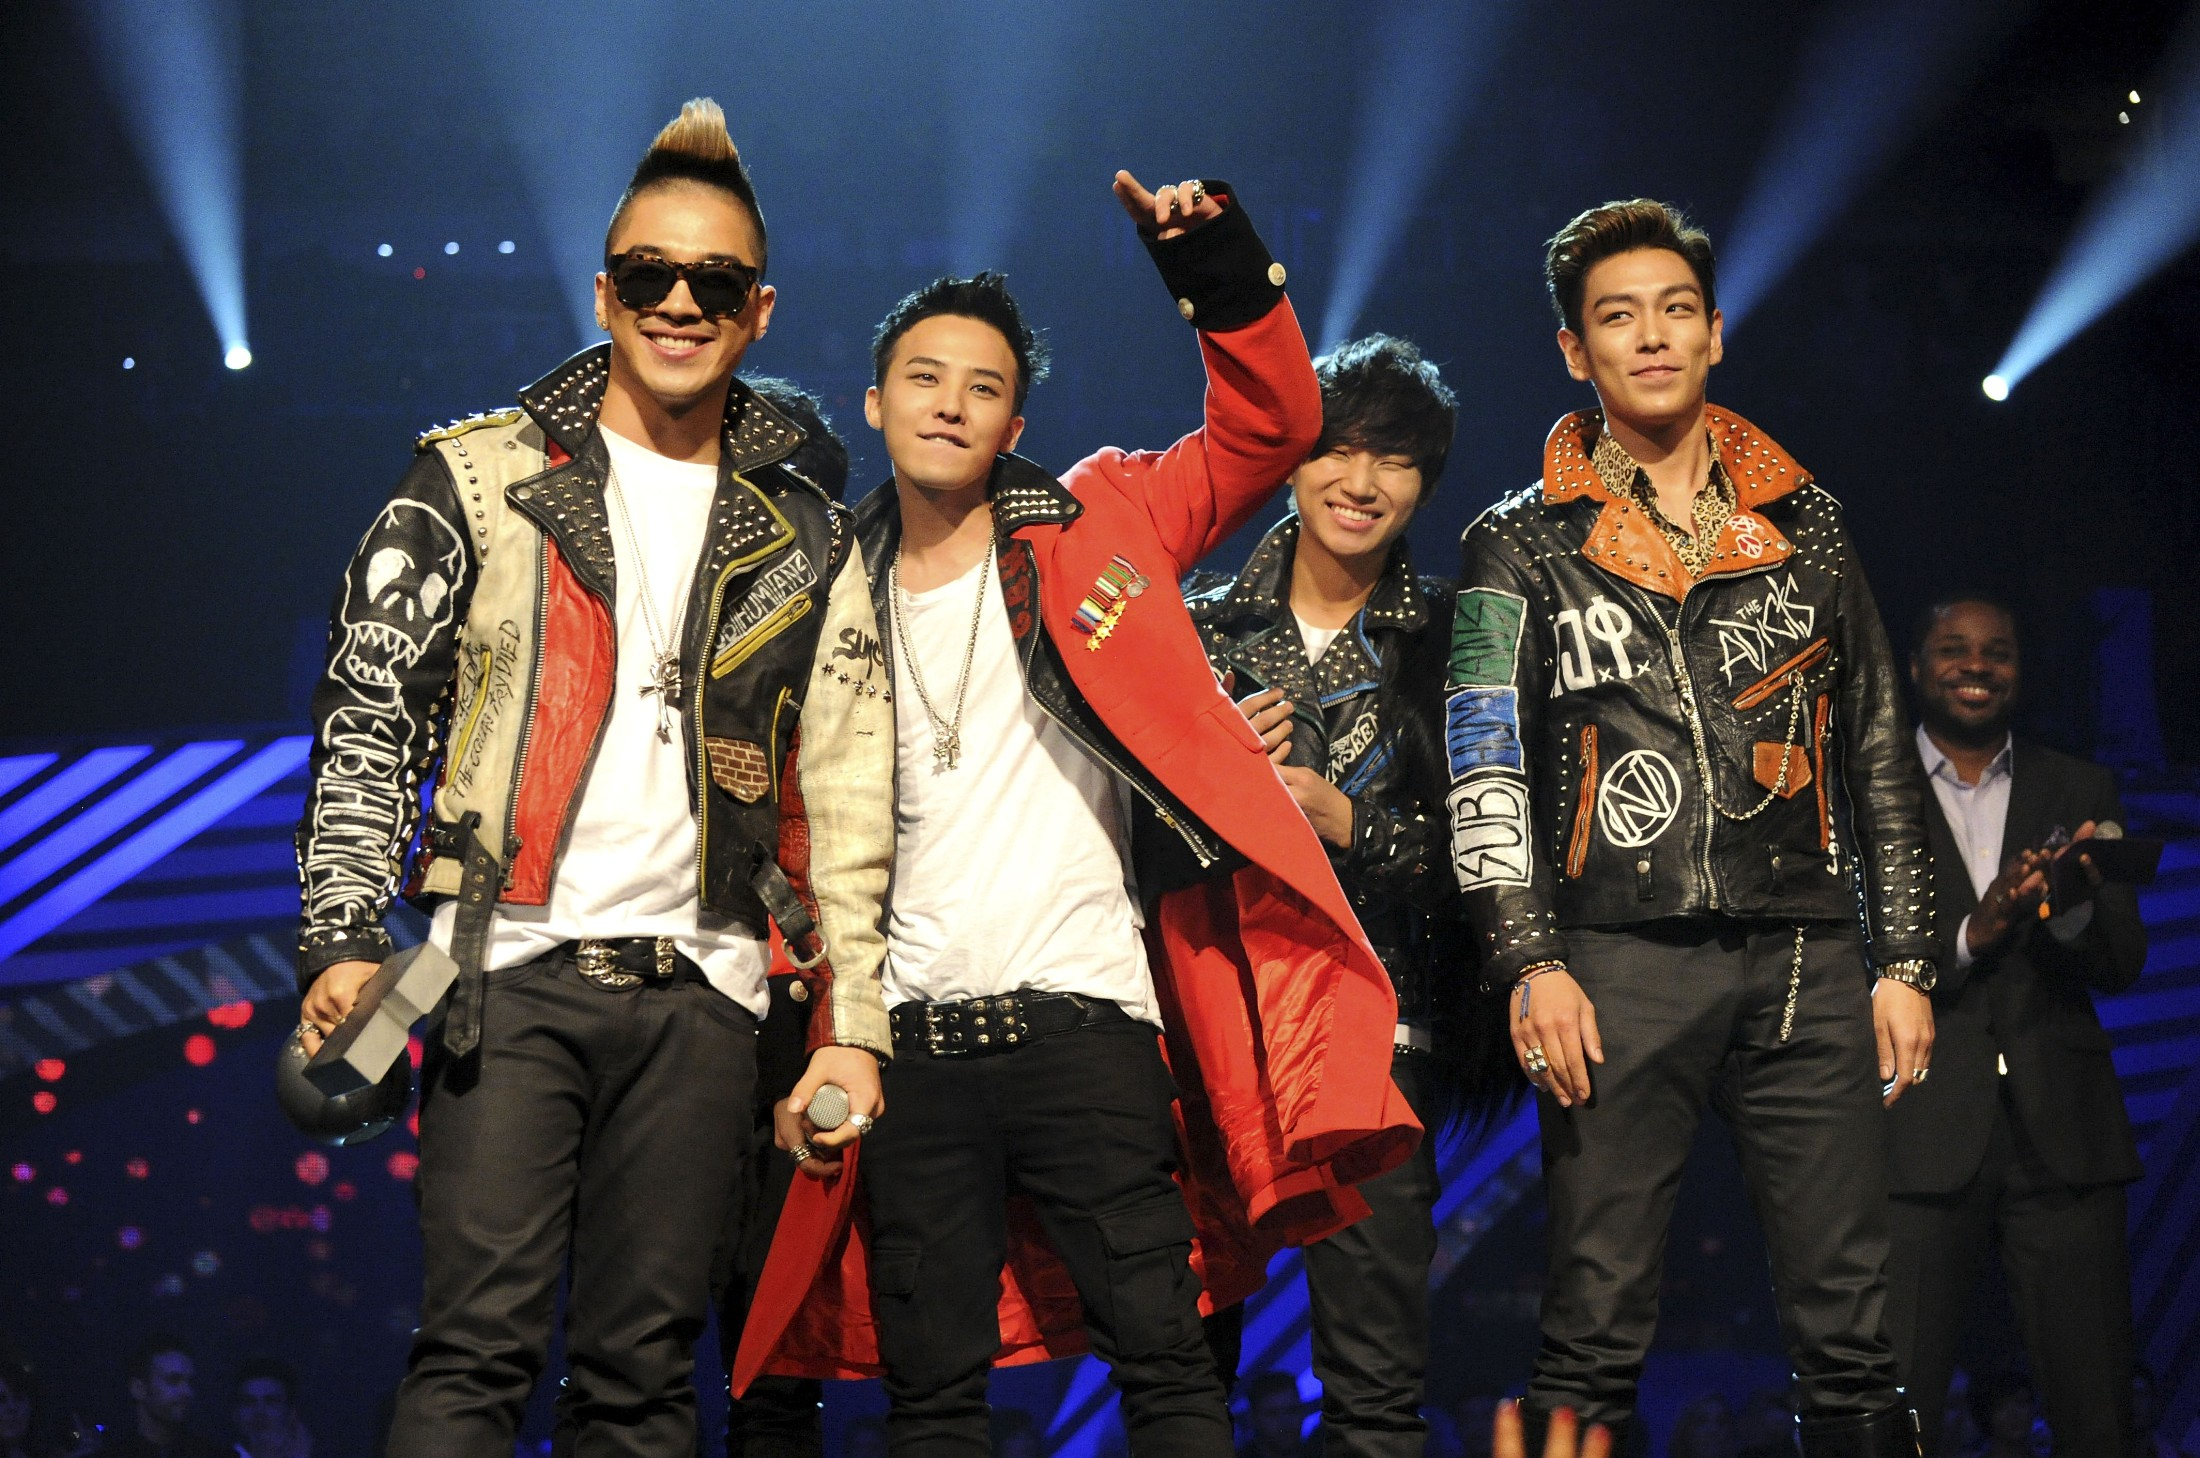 G-Dragon, Taeyang, T.O.P and Daesung of Korean band Bigbang receive the Best Worldwide Award during the MTV Europe Music Awards 2011 live show at at the Odyssey Arena on November 6, 2011 in Belfast, Northern Ireland.